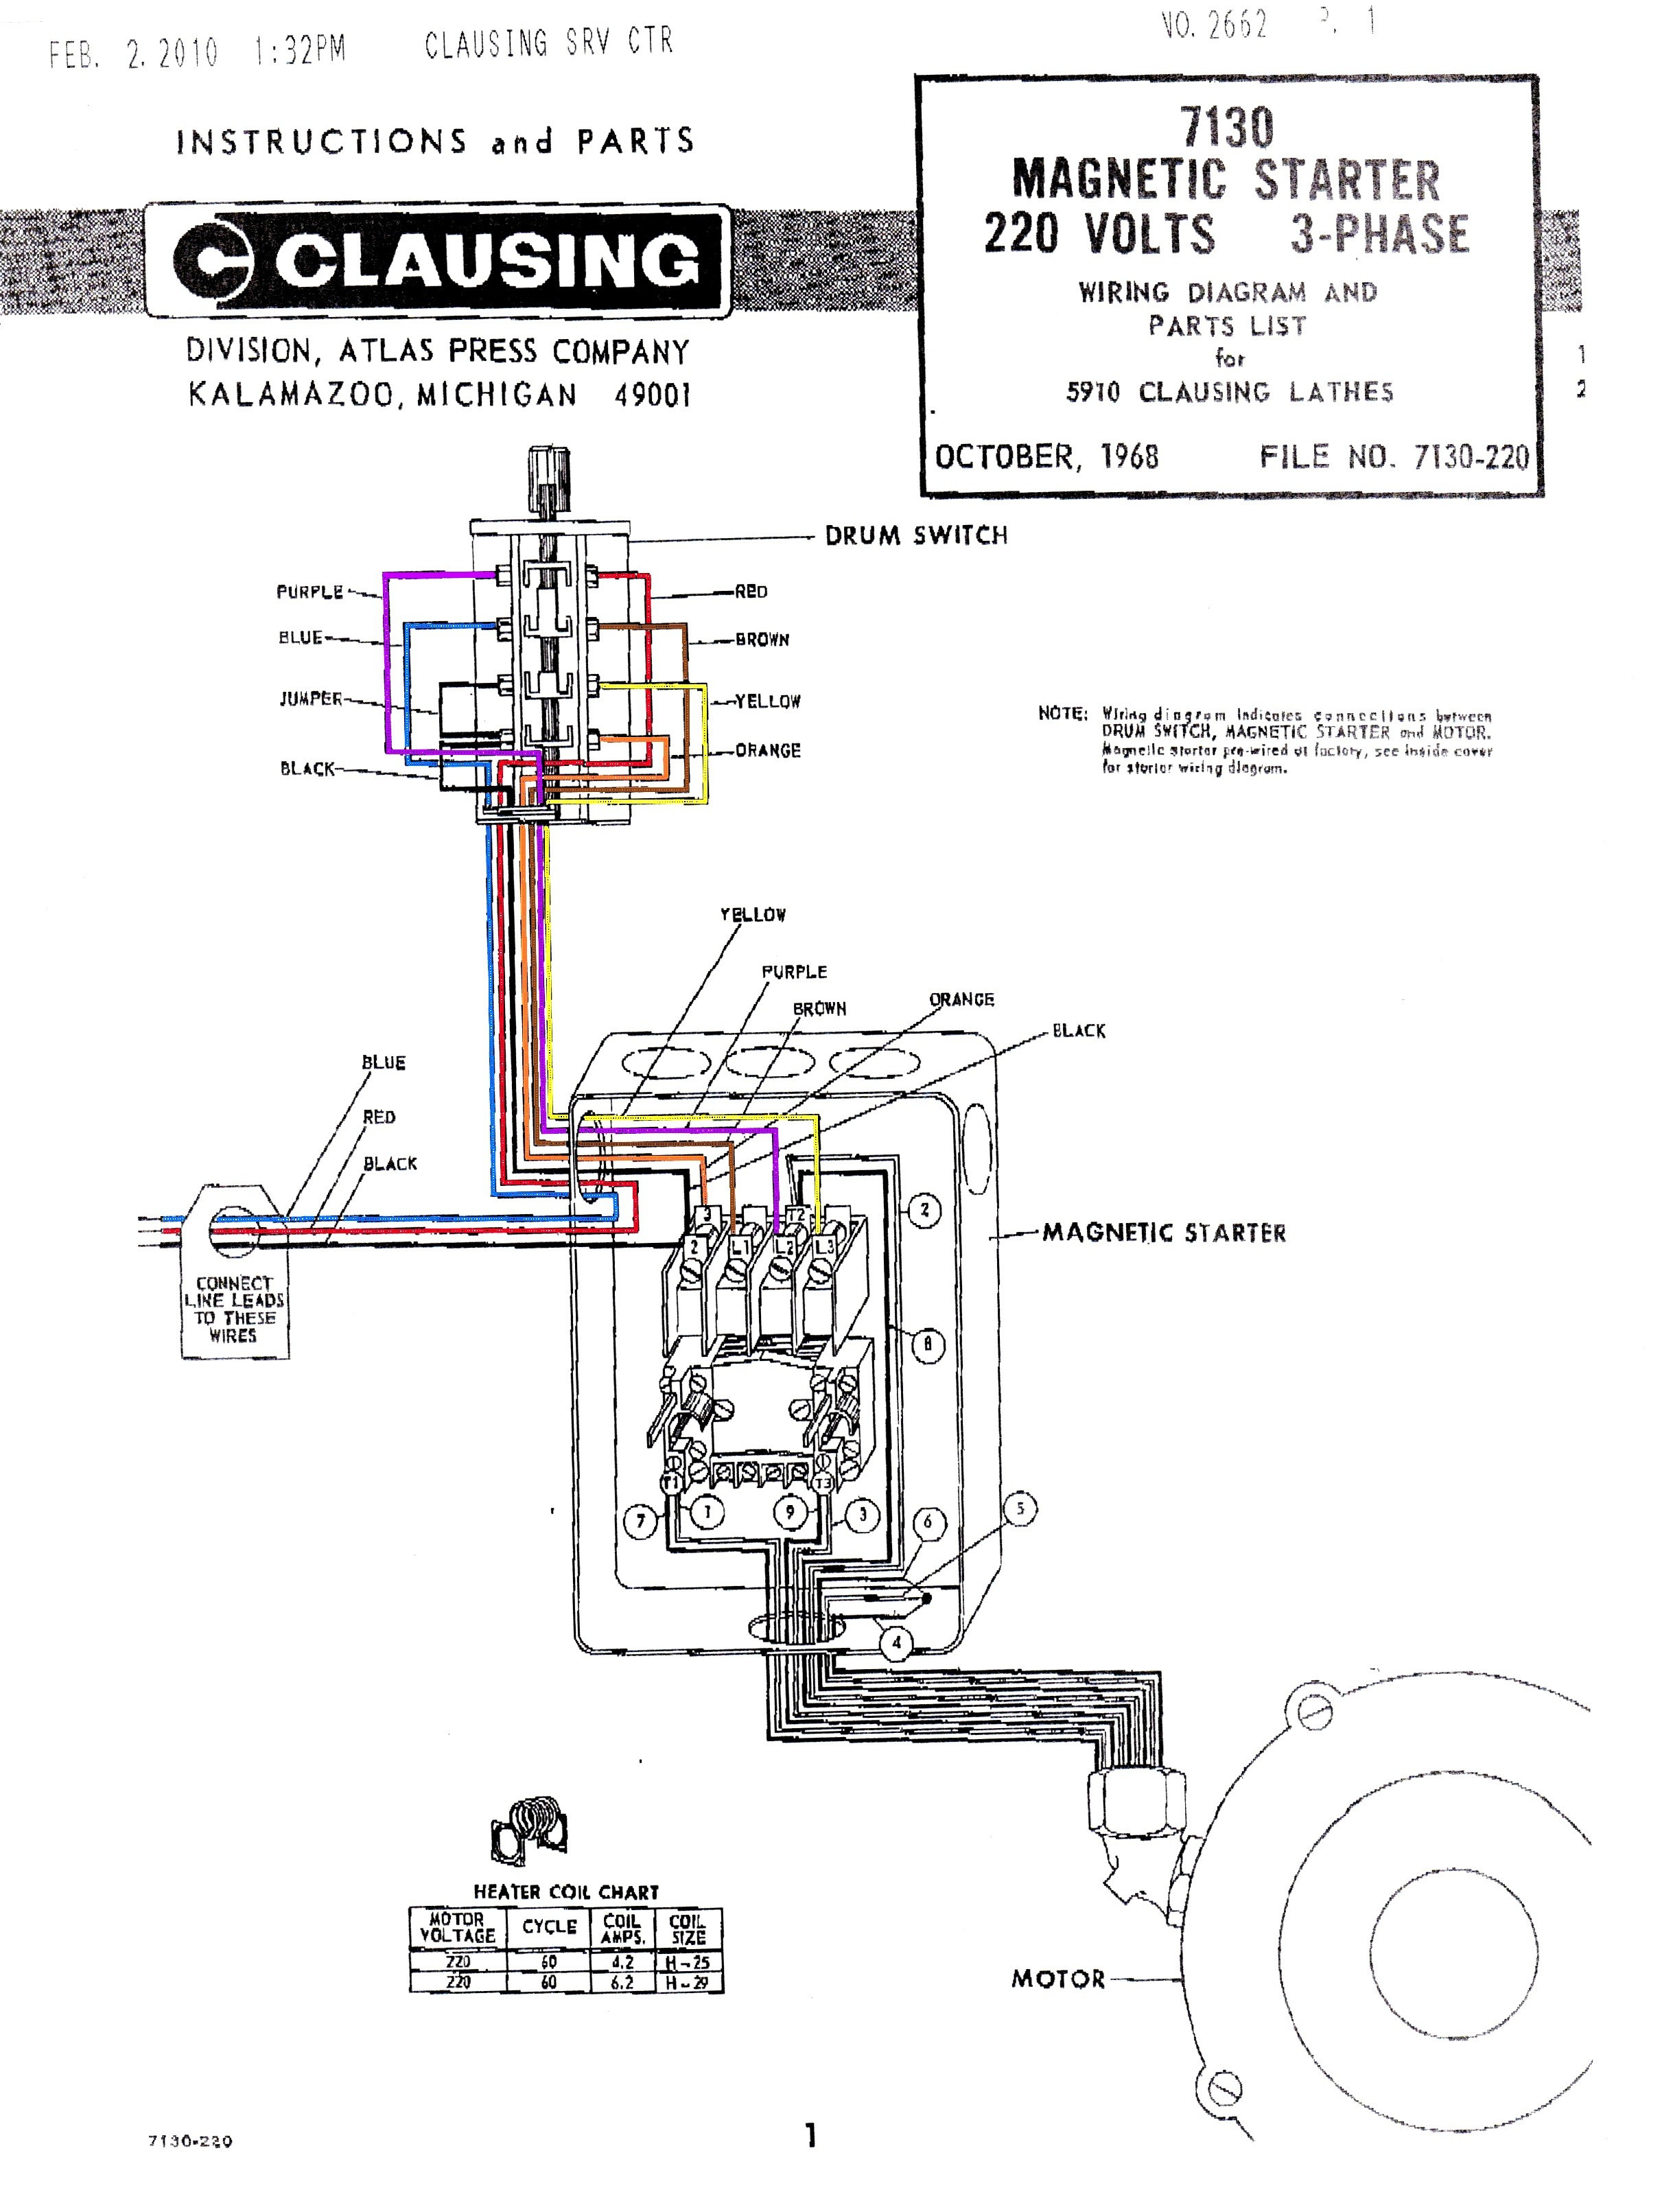 Magnetic Starter Schematic | Wiring Diagram on